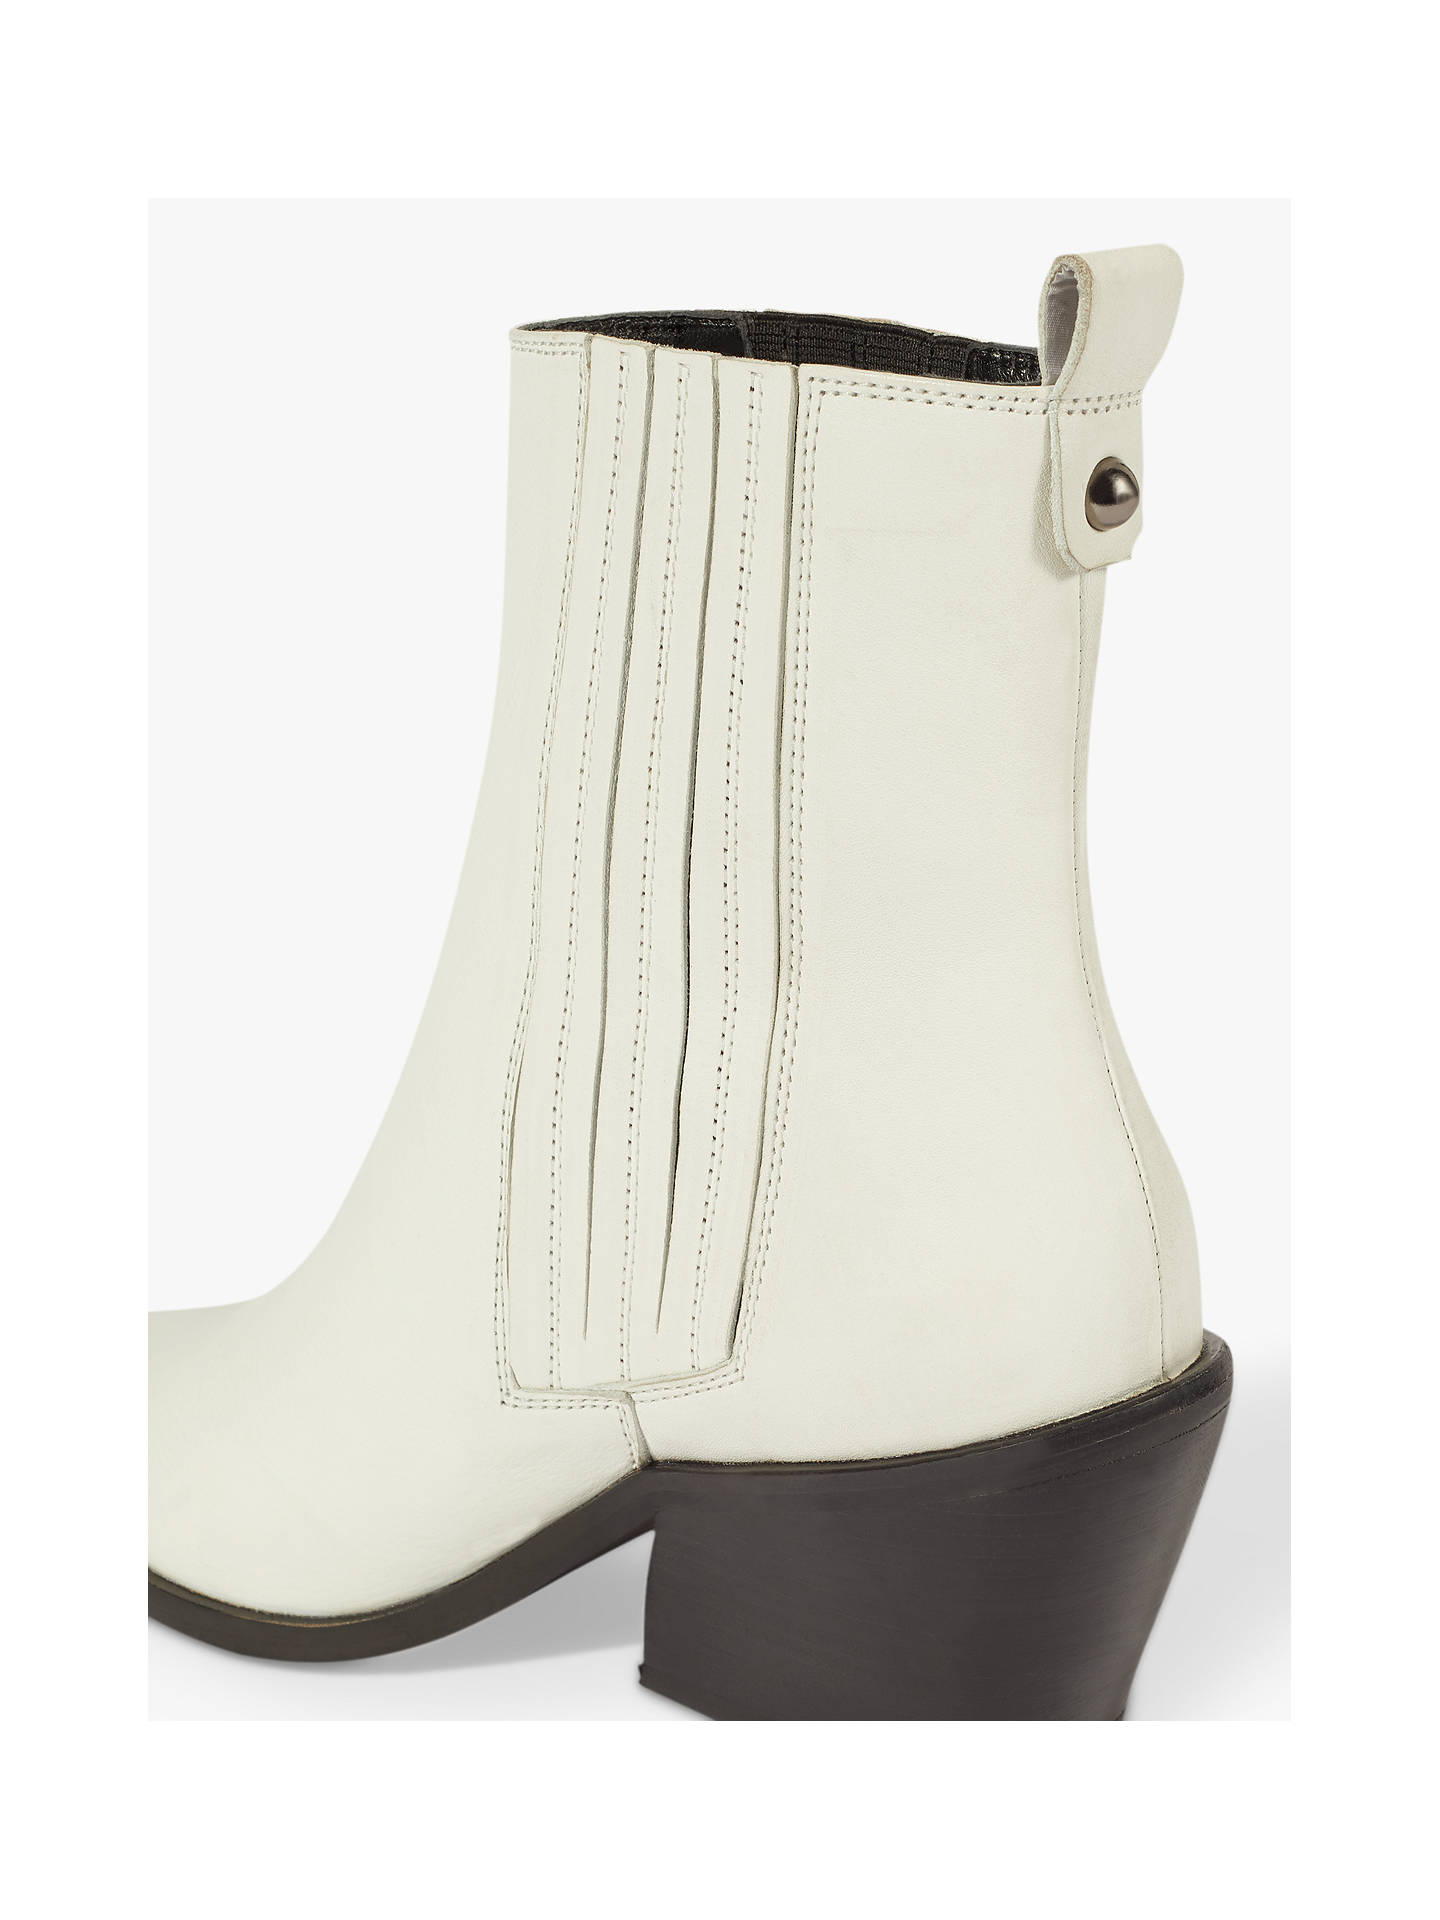 af6959d9dec Jigsaw Heath Cowboy Ankle Boots, White Leather at John Lewis & Partners